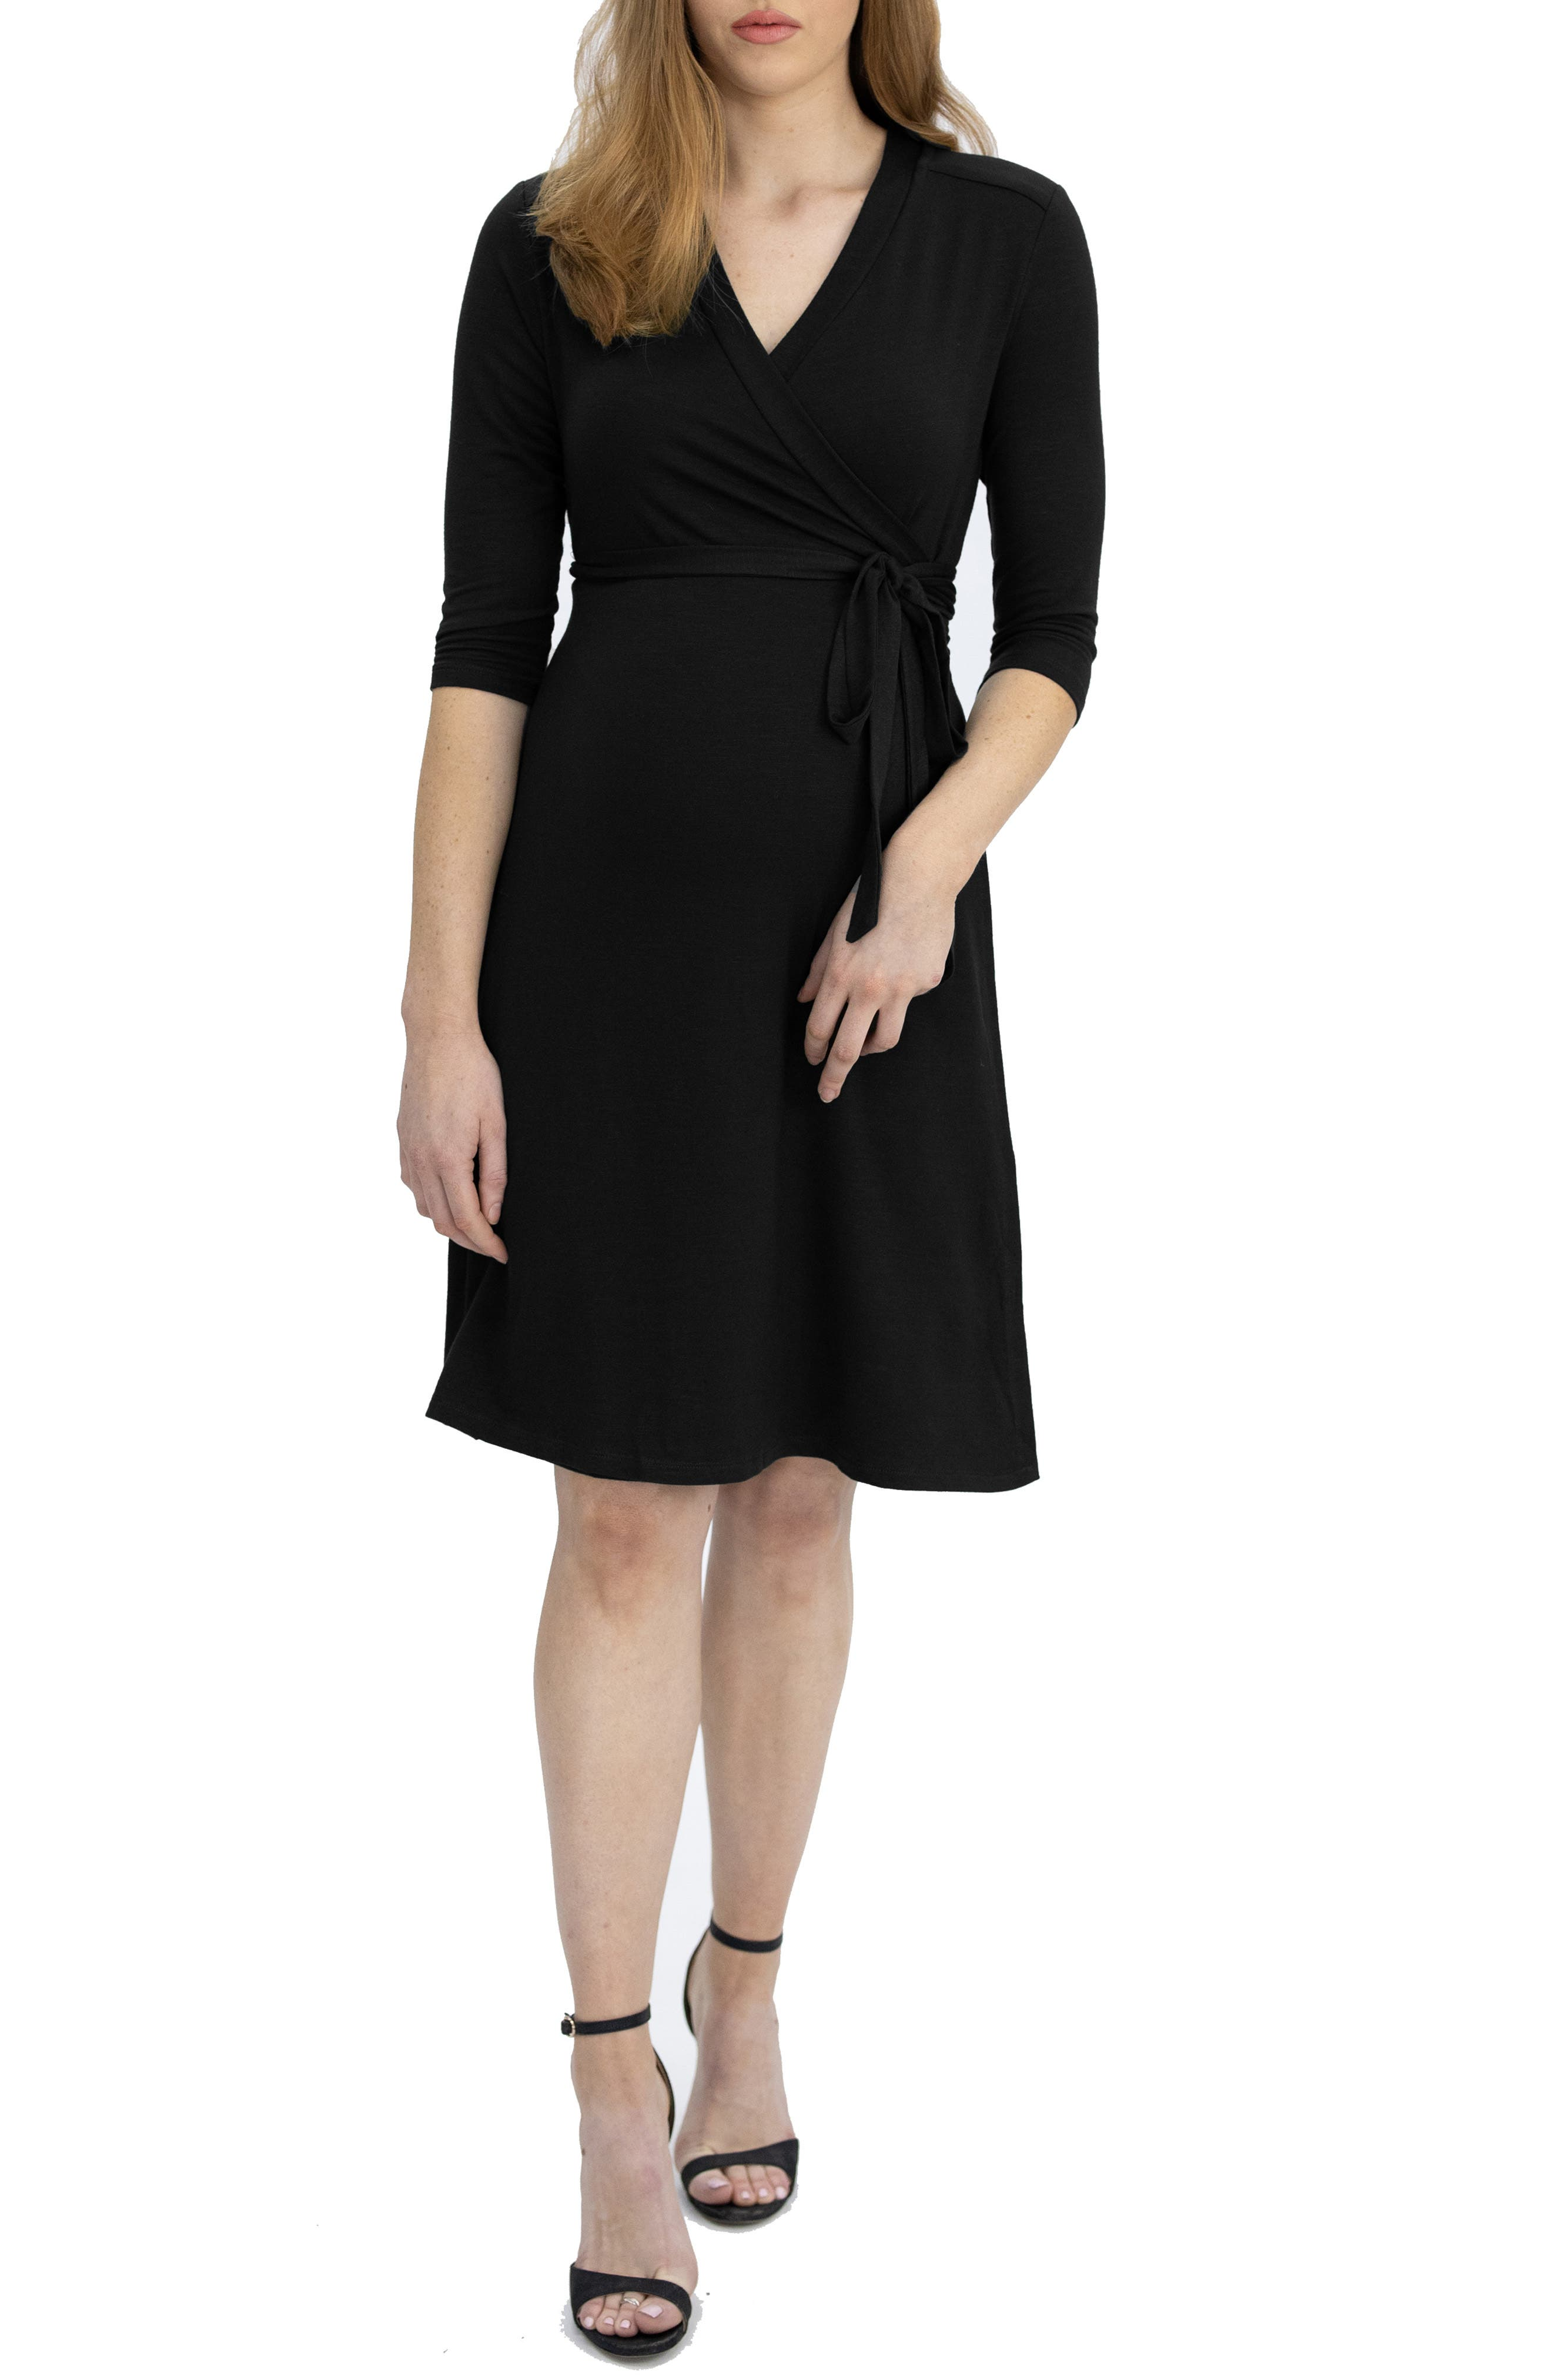 A wrap design comfortably fits and flatters your baby bump through every trimester in this supersoft slub-jersey dress that can be dressed up or down. The neckline makes it easy to nurse on the go once baby comes. Style Name: Angel Maternity Jersey Maternity/nursing Wrap Dress. Style Number: 6121335. Available in stores.